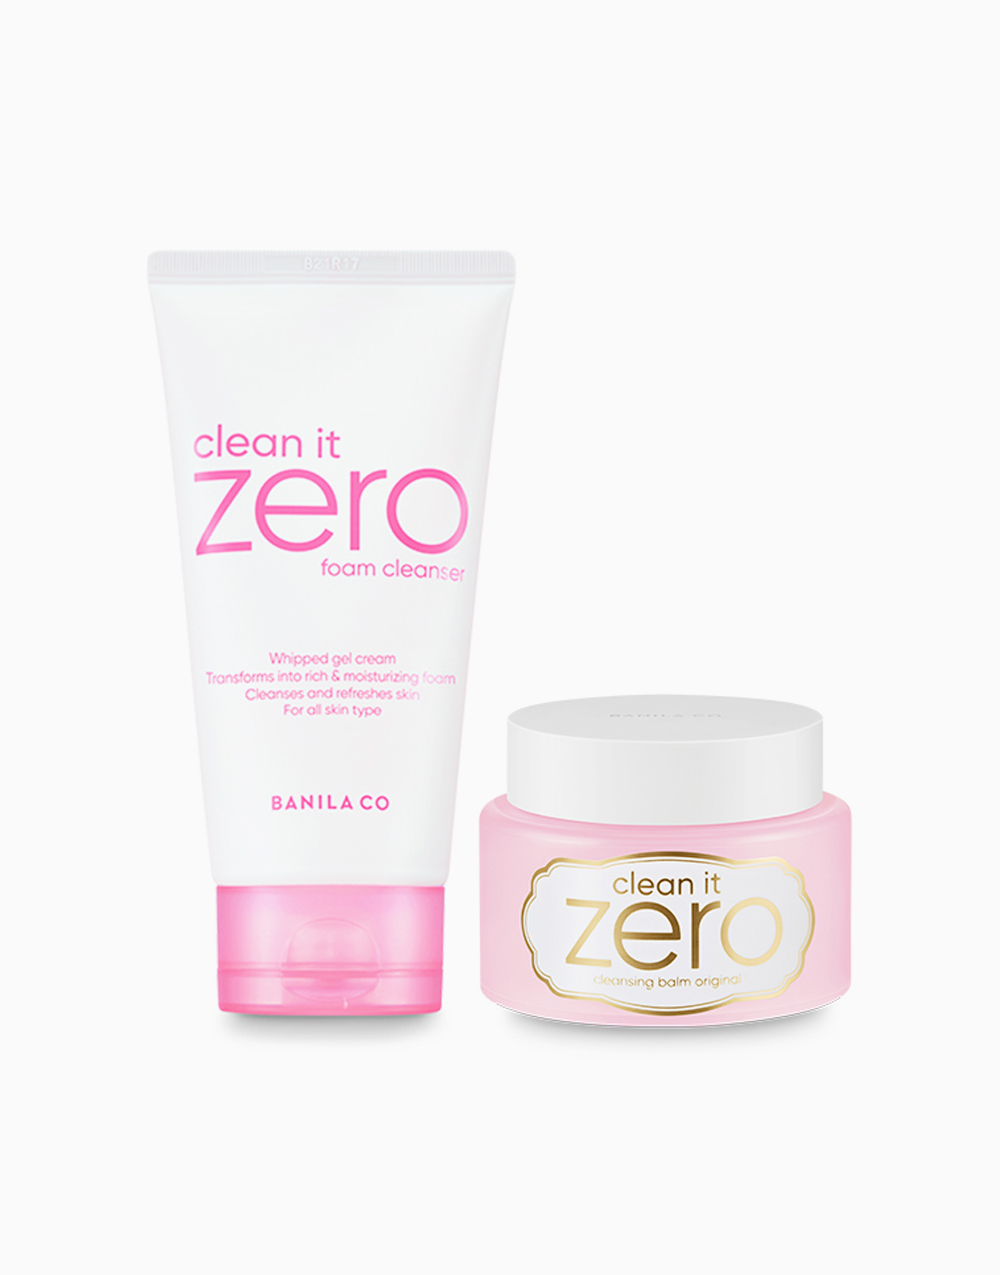 Clean It Zero Double Cleansing Duo Macaron Edition (Original) by Banila Co.